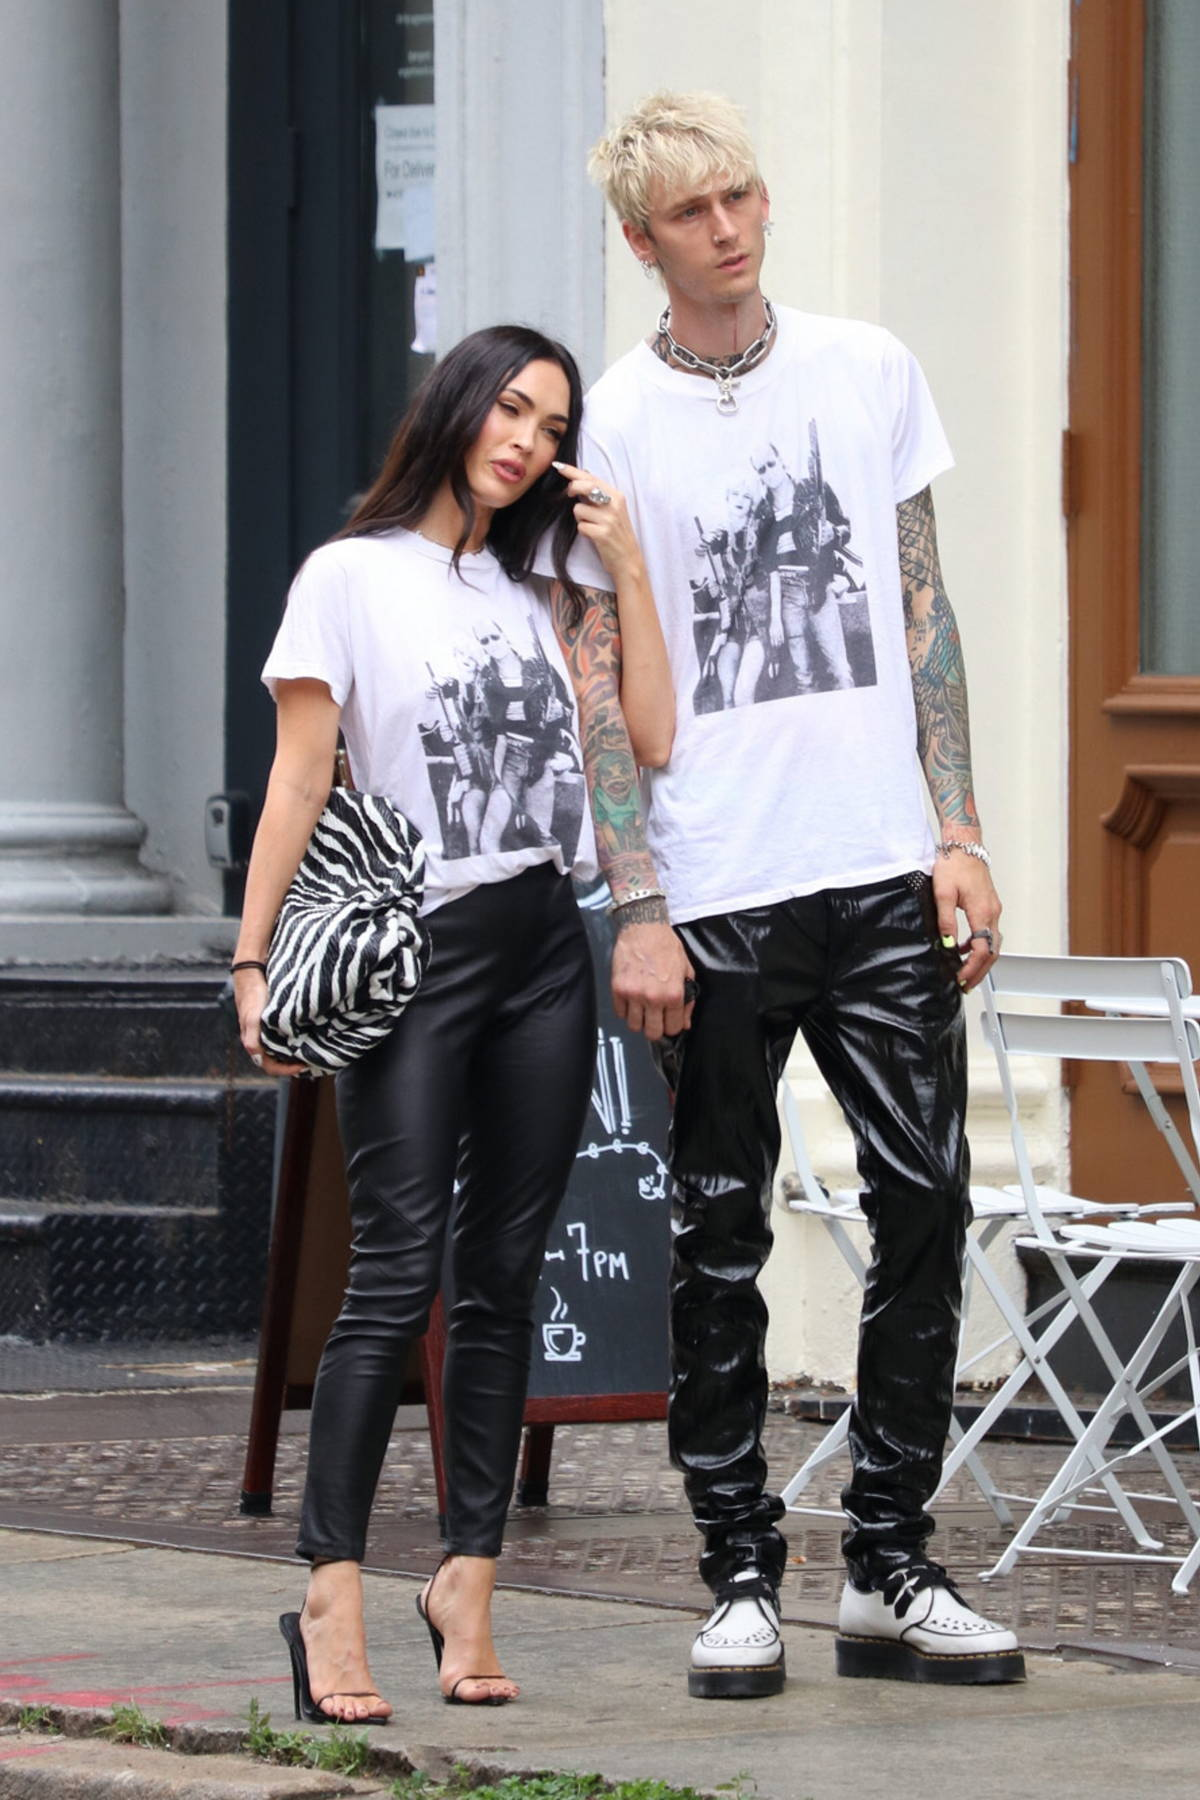 Megan Fox and Machine Gun Kelly step out wearing matching outfits in New York City